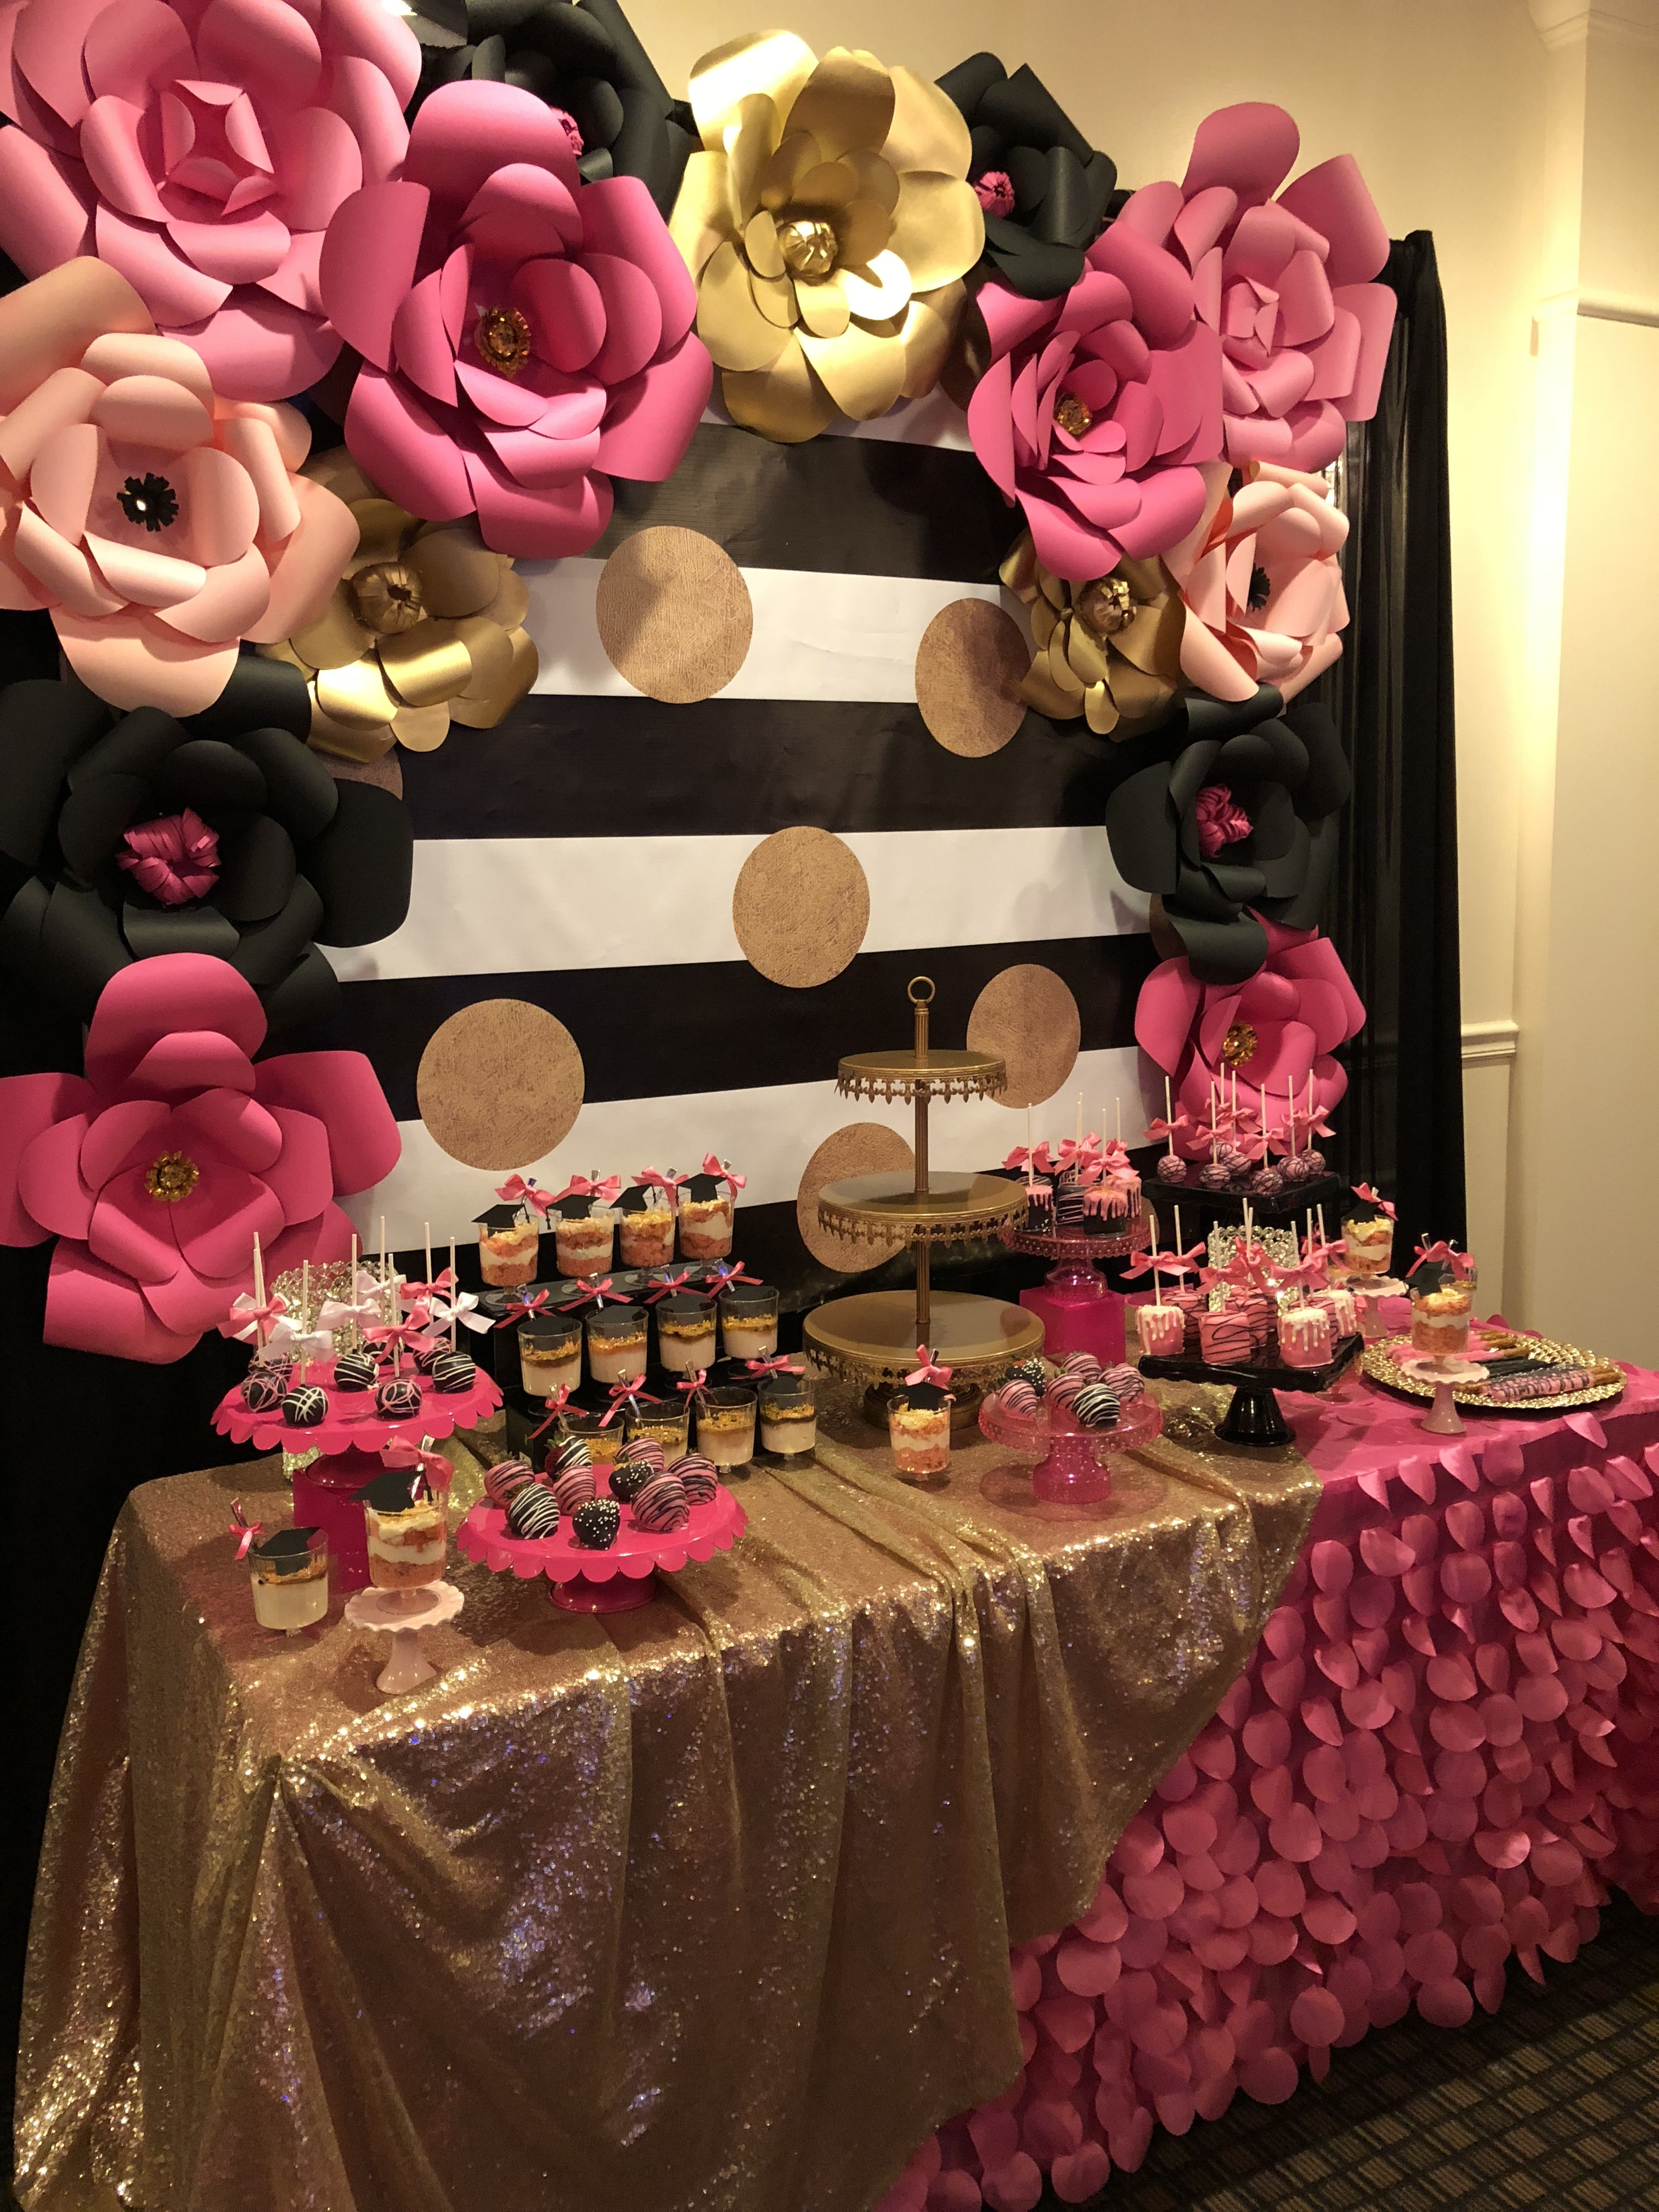 Kate Spade Themed Dessert Table Hot Pink Black White And Gold